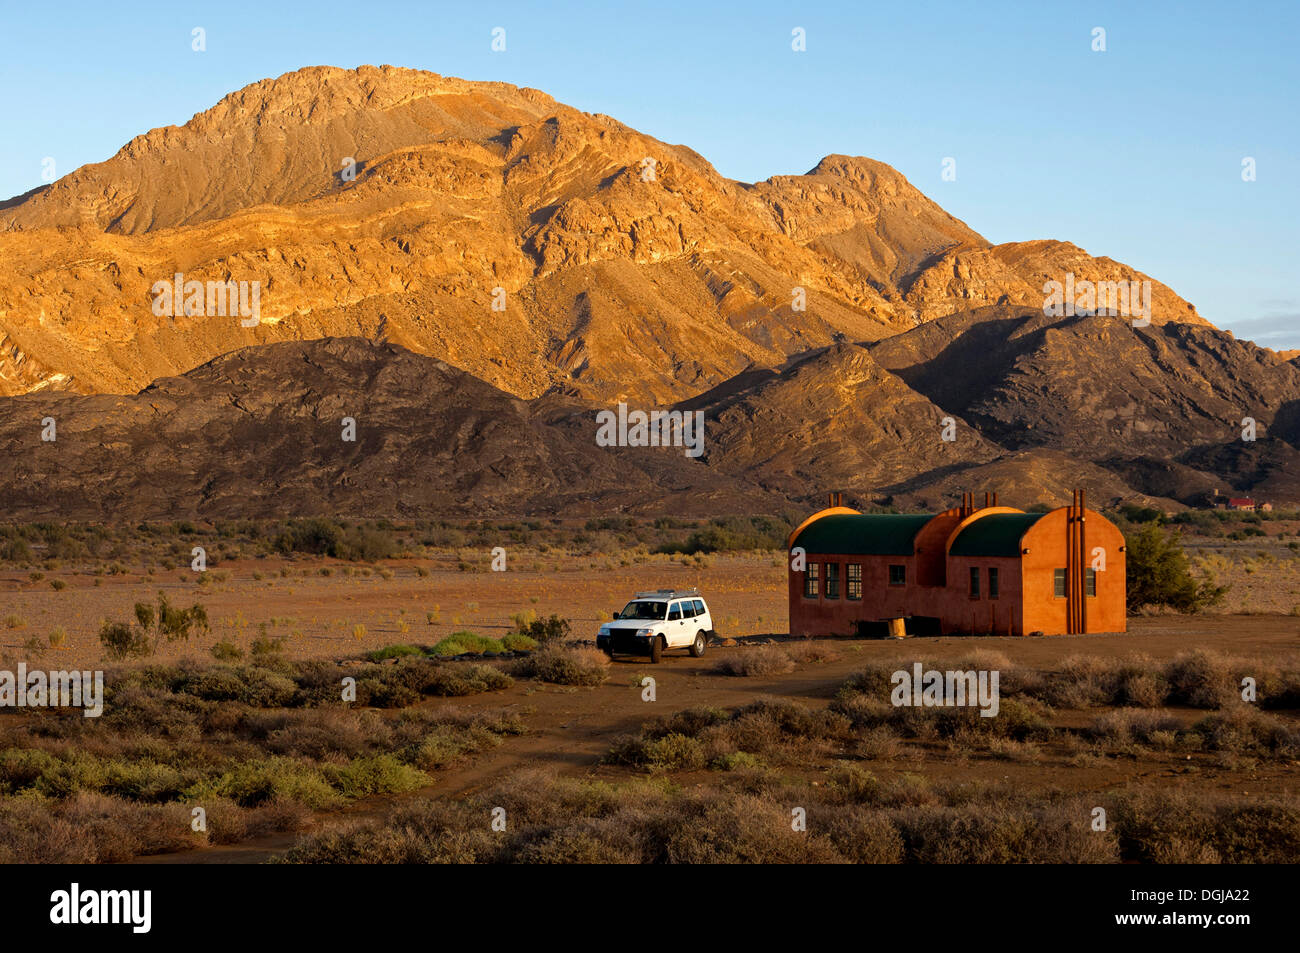 Gariep research station of the BIOTA AFRICA research initiative in Richtersveld National Park near Sendelingsdrift, South Africa - Stock Image